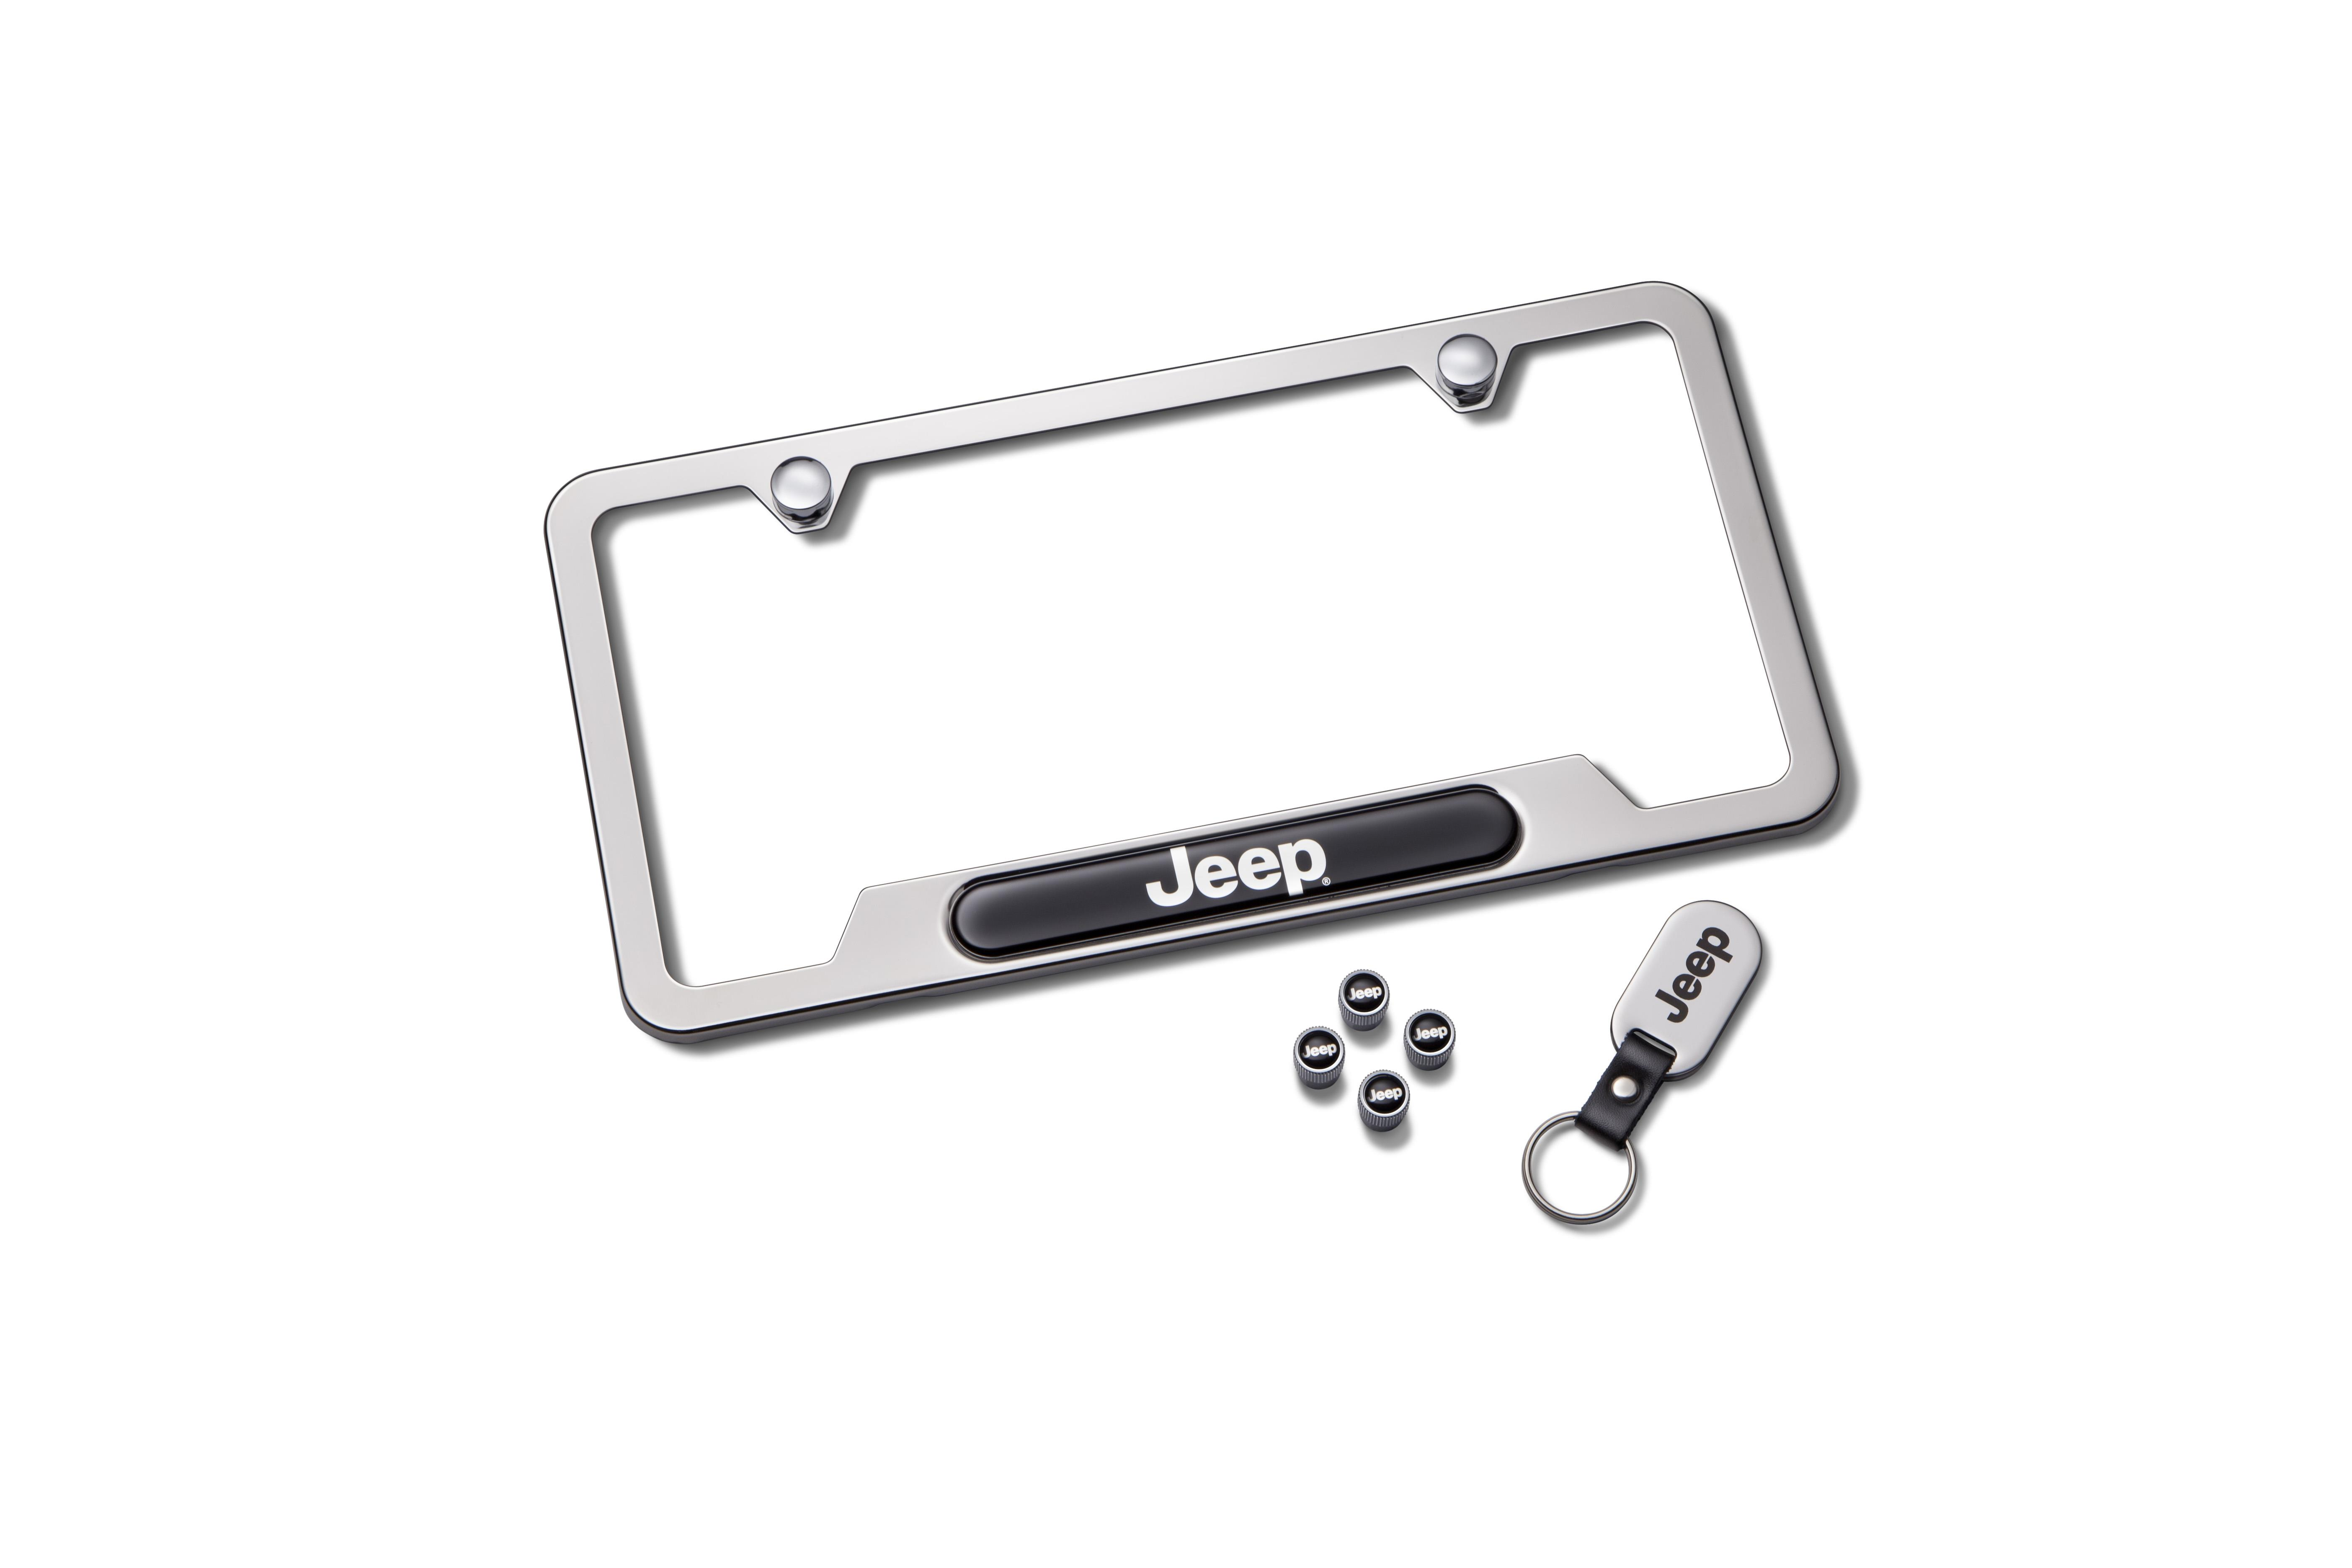 Jeep Wrangler License Plate T Set Includes One